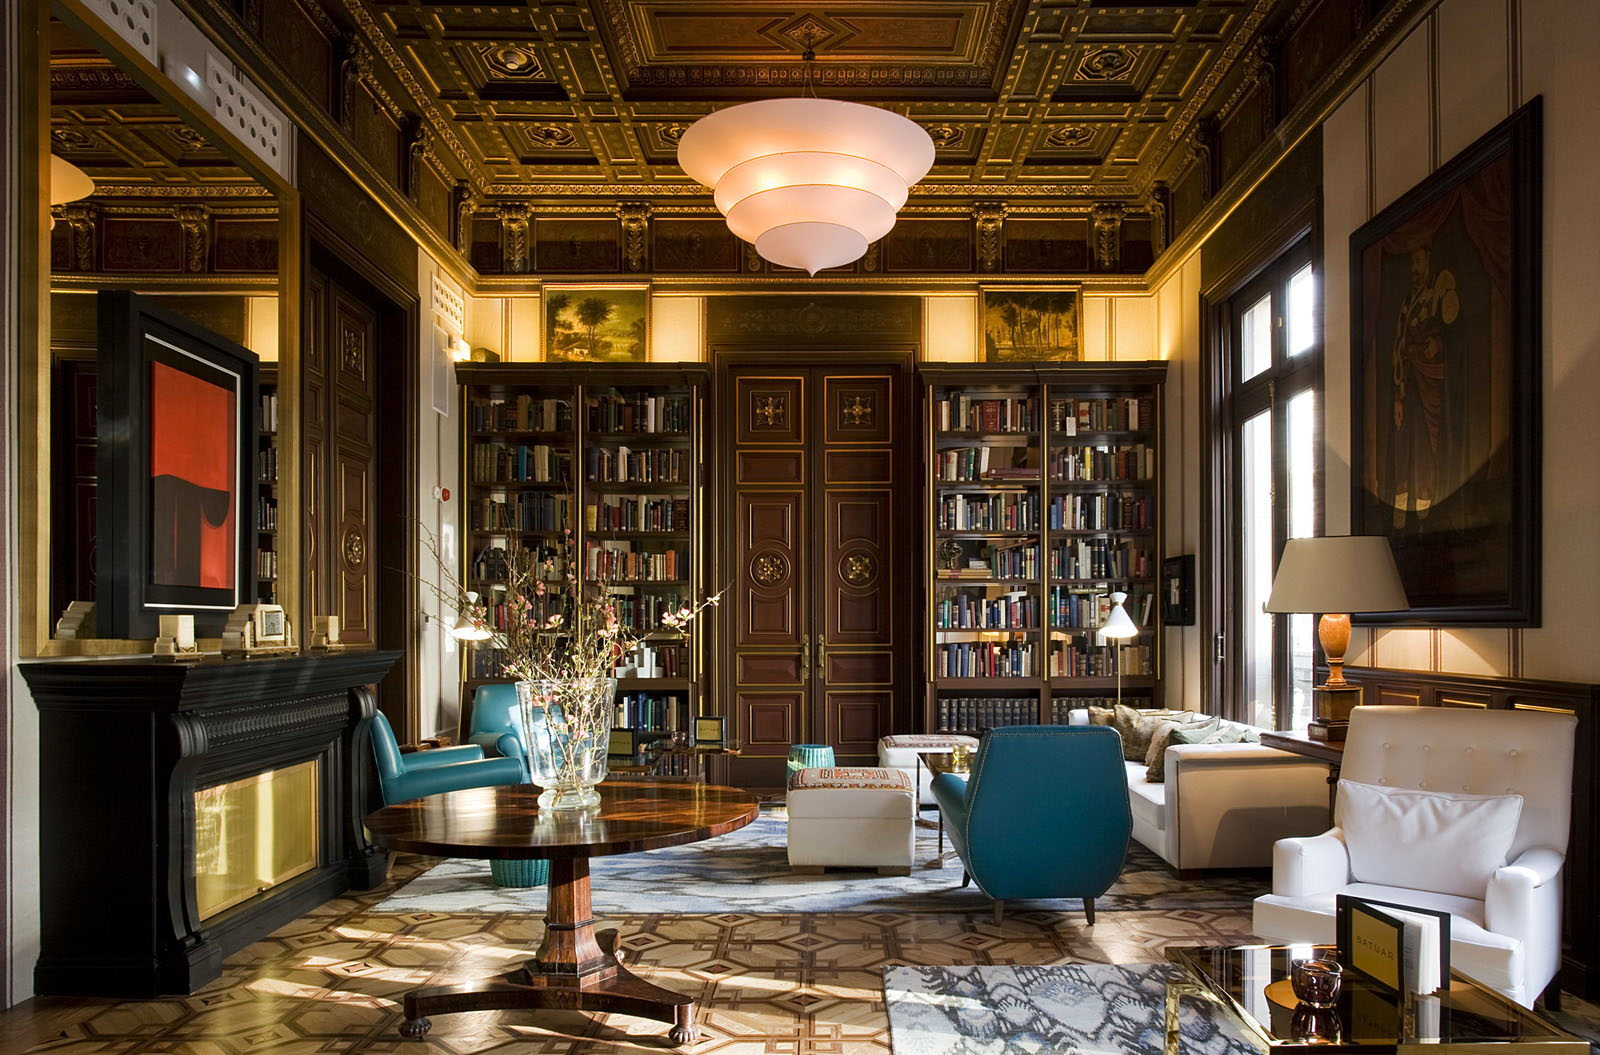 Cotton House Hotel Barcelona Mixes Neoclassical Elements